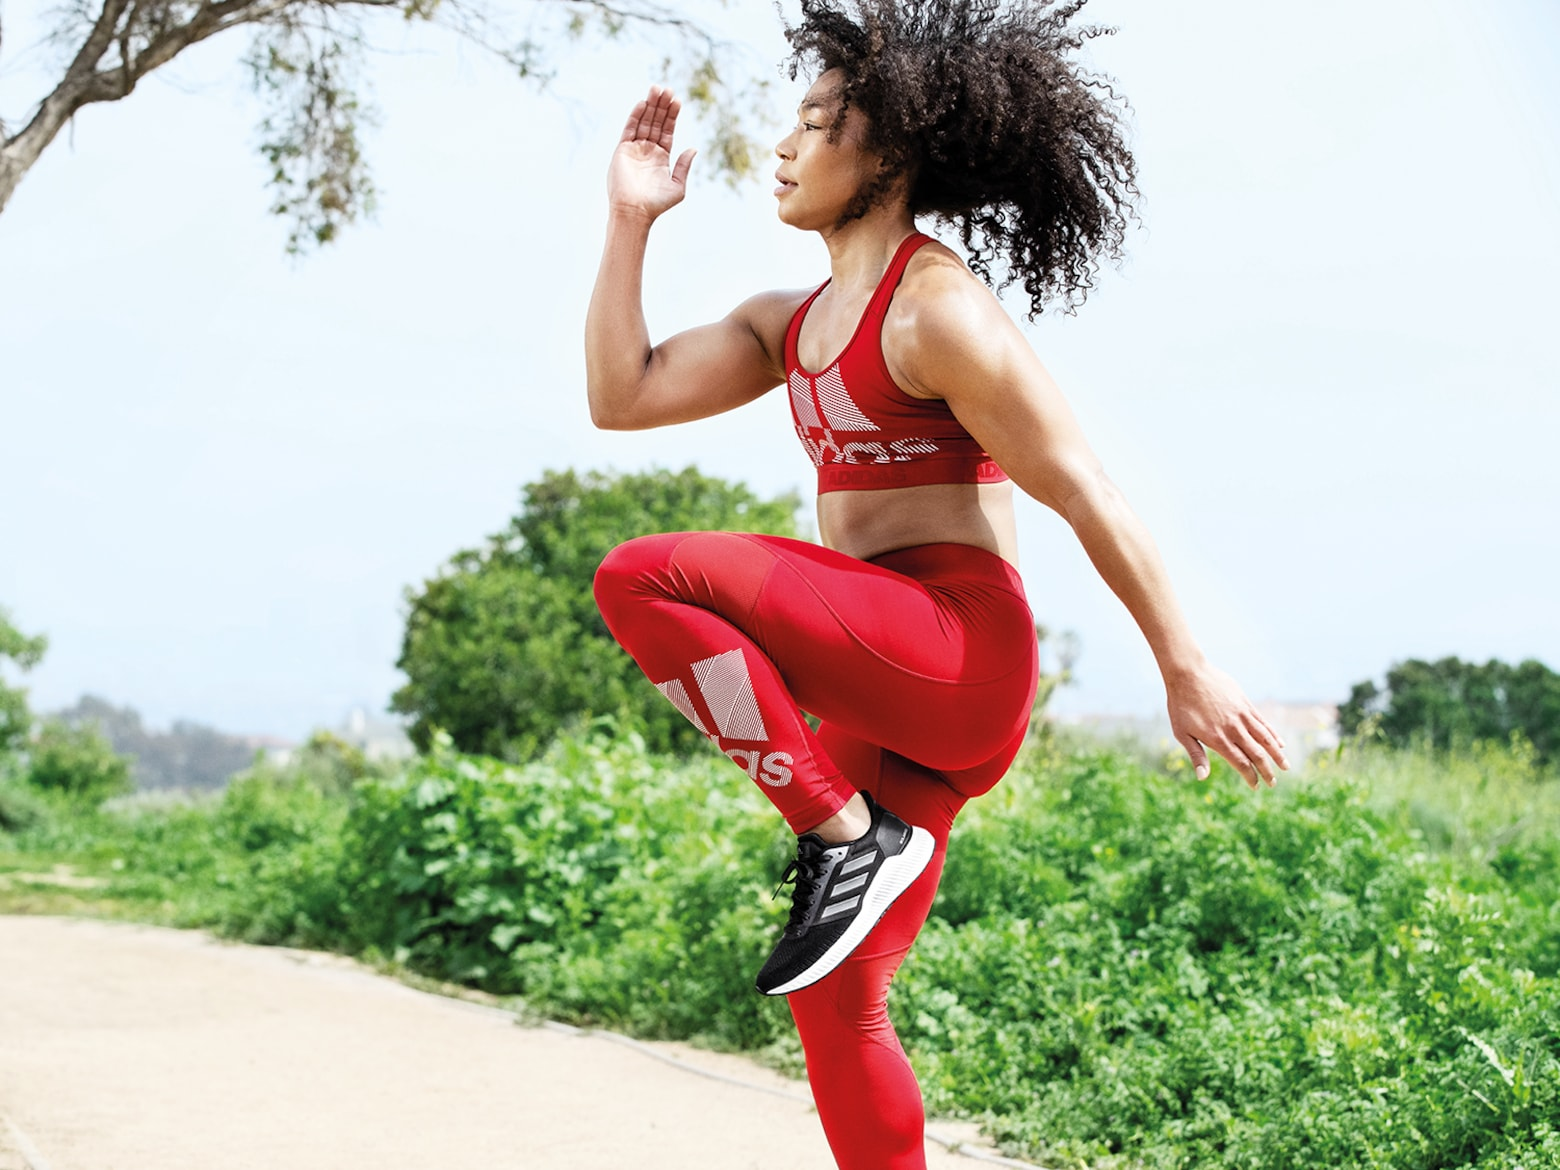 Sport-Tights by adidas The perfect tight for your workout